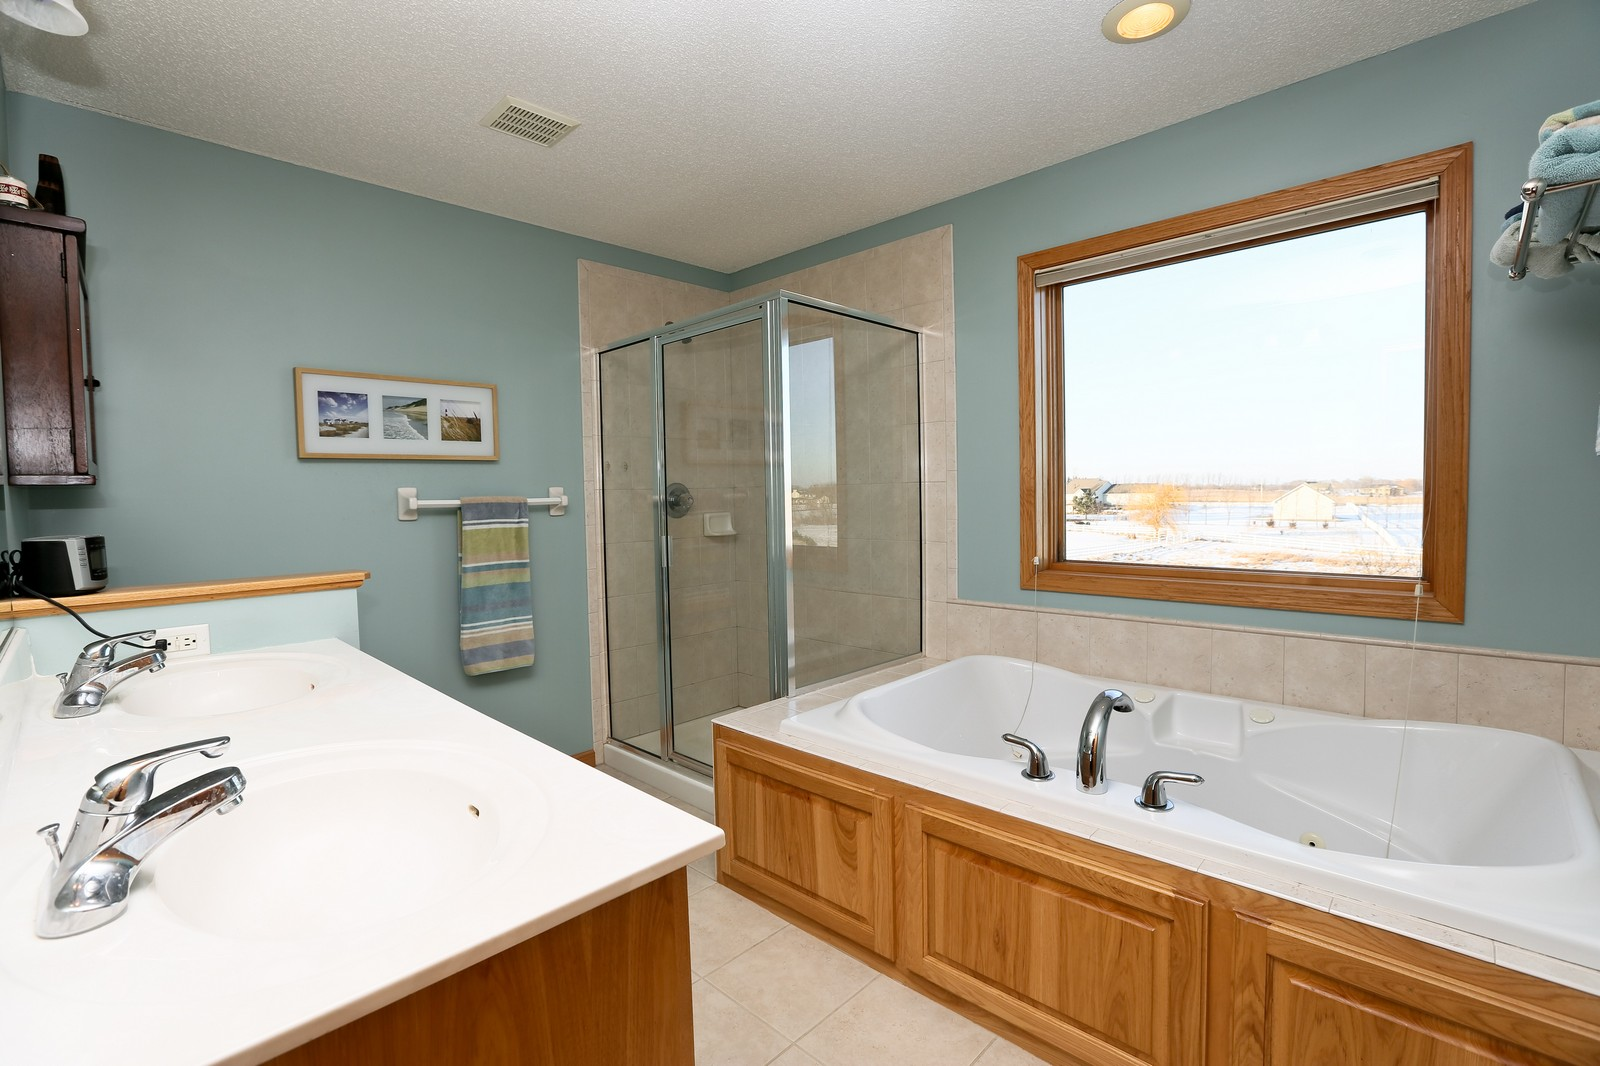 Real Estate Photography - 23160 Meadowview Dr, Corcoran, MN, 55374 - Master Bathroom